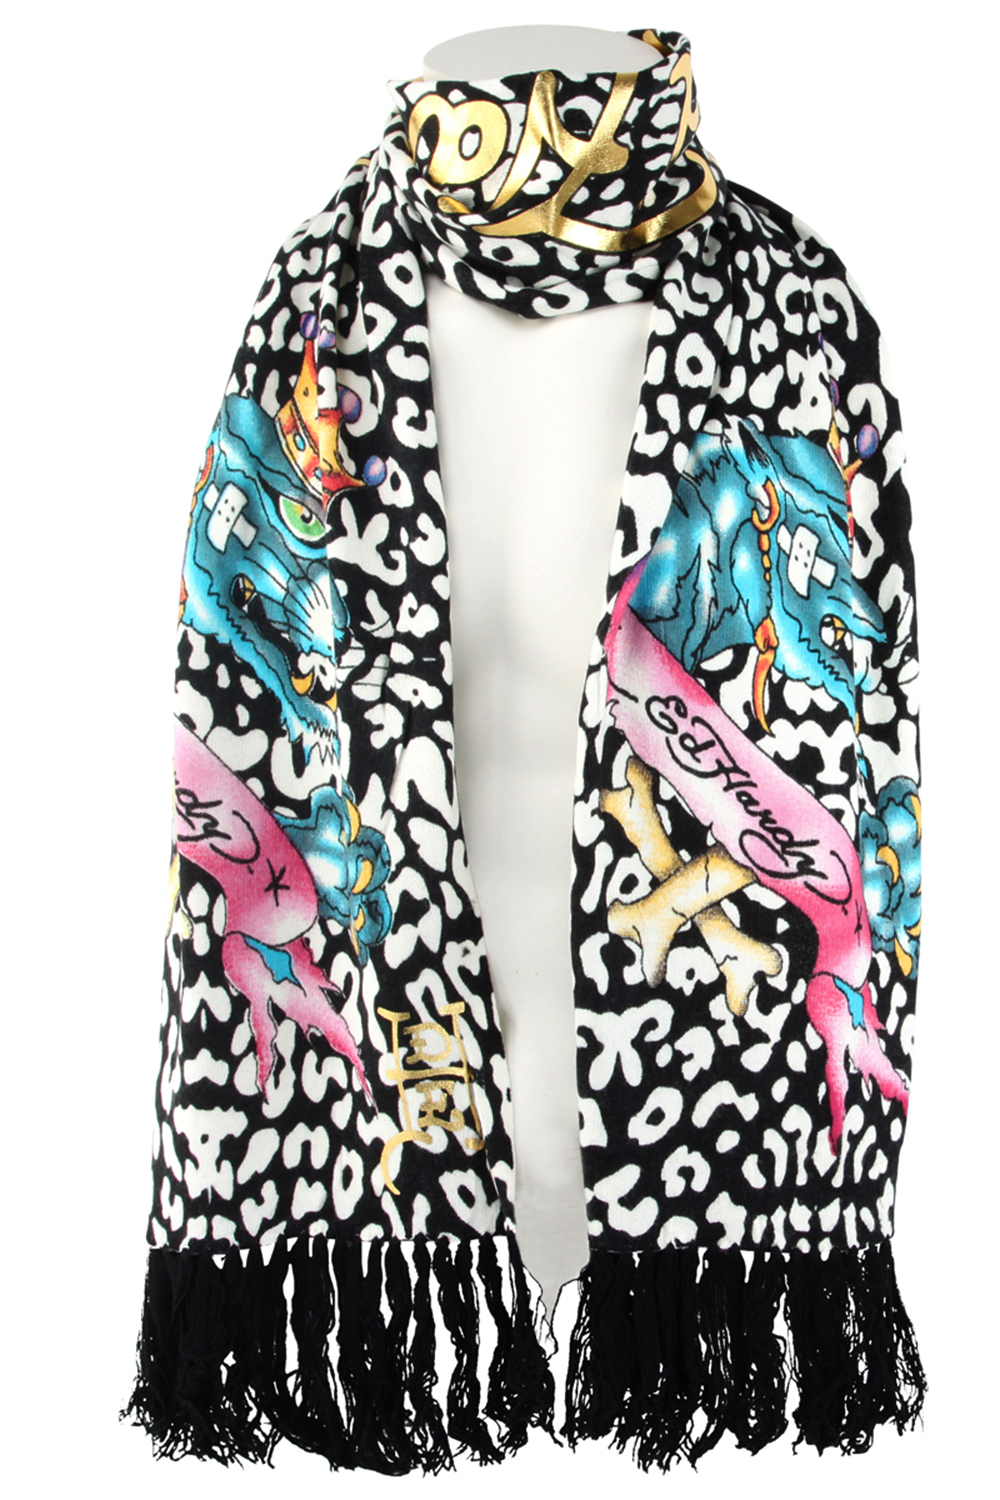 ed hardy white black womens panther knit scarf ebay